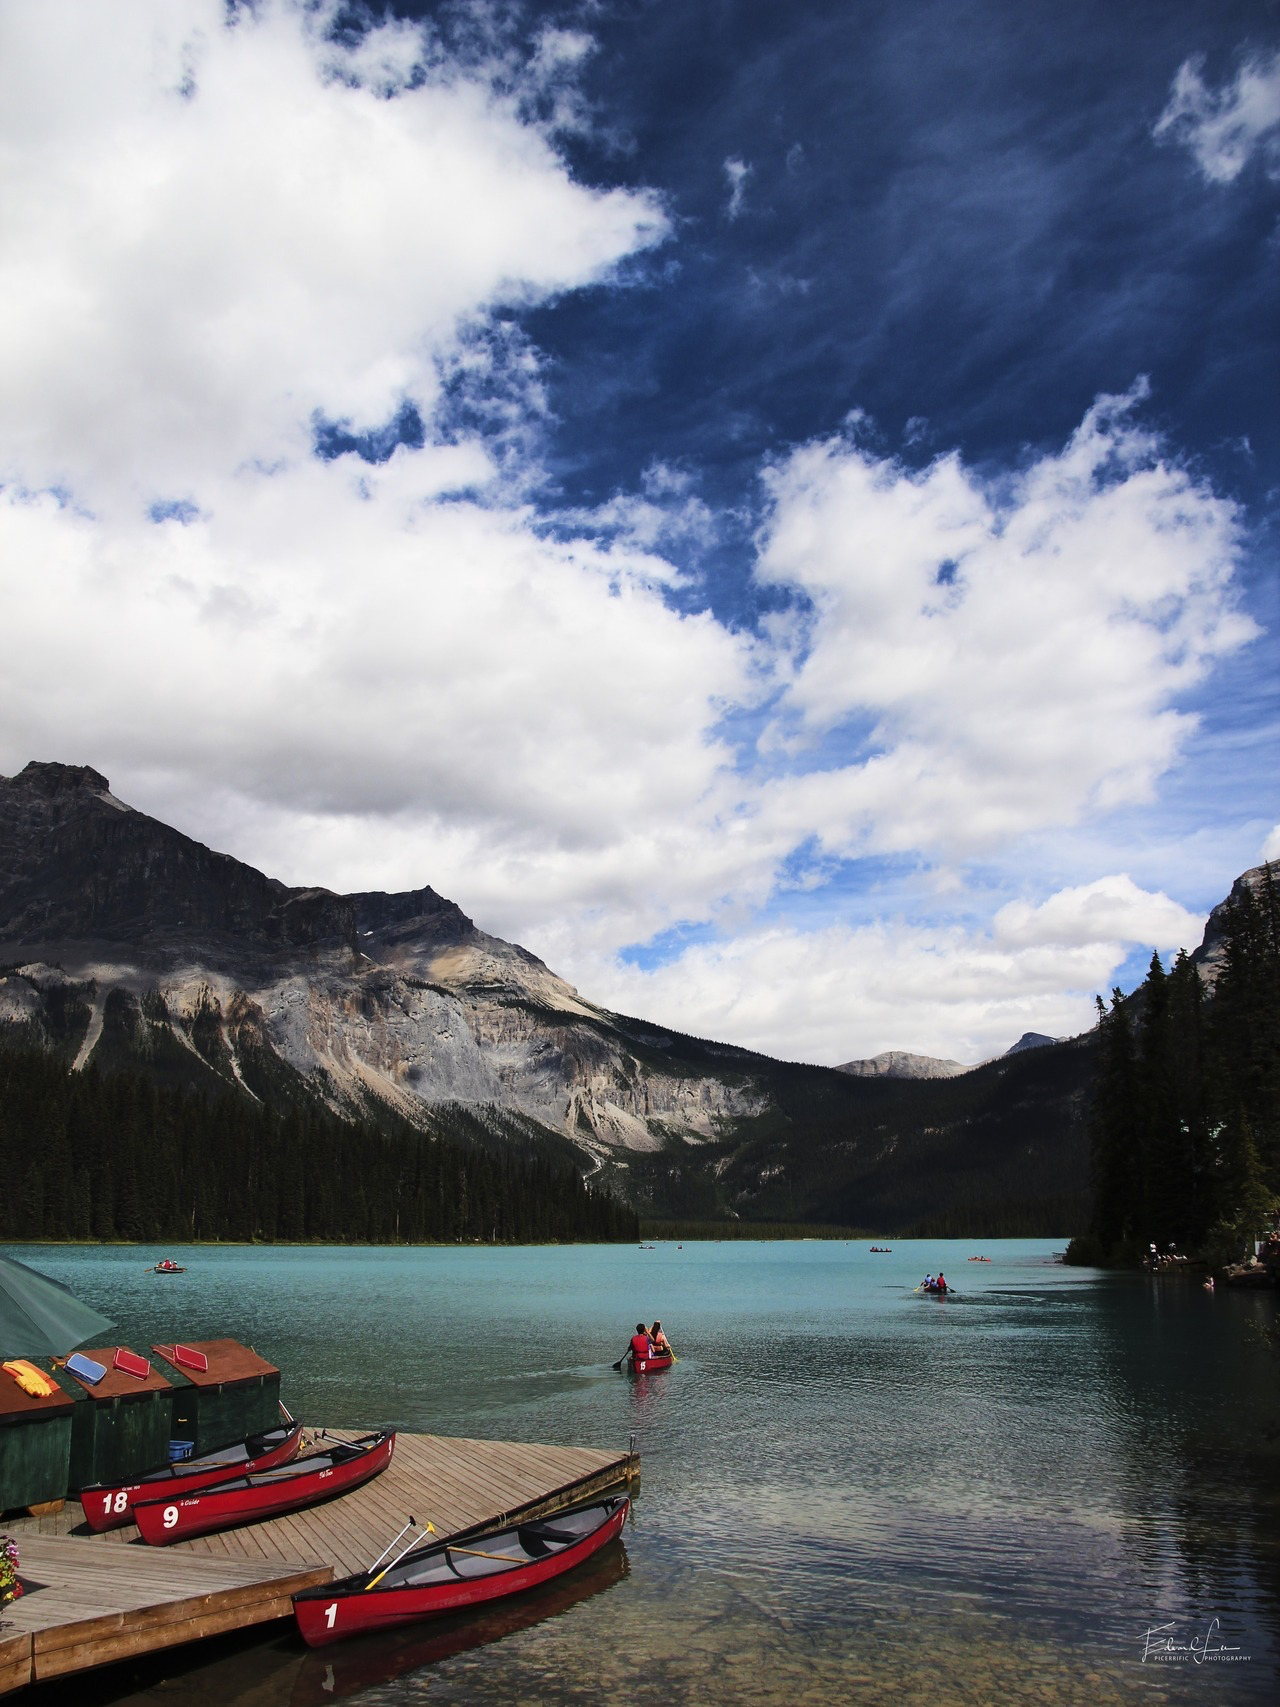 9_Red boats on Emerald Lake, 2013..jpg